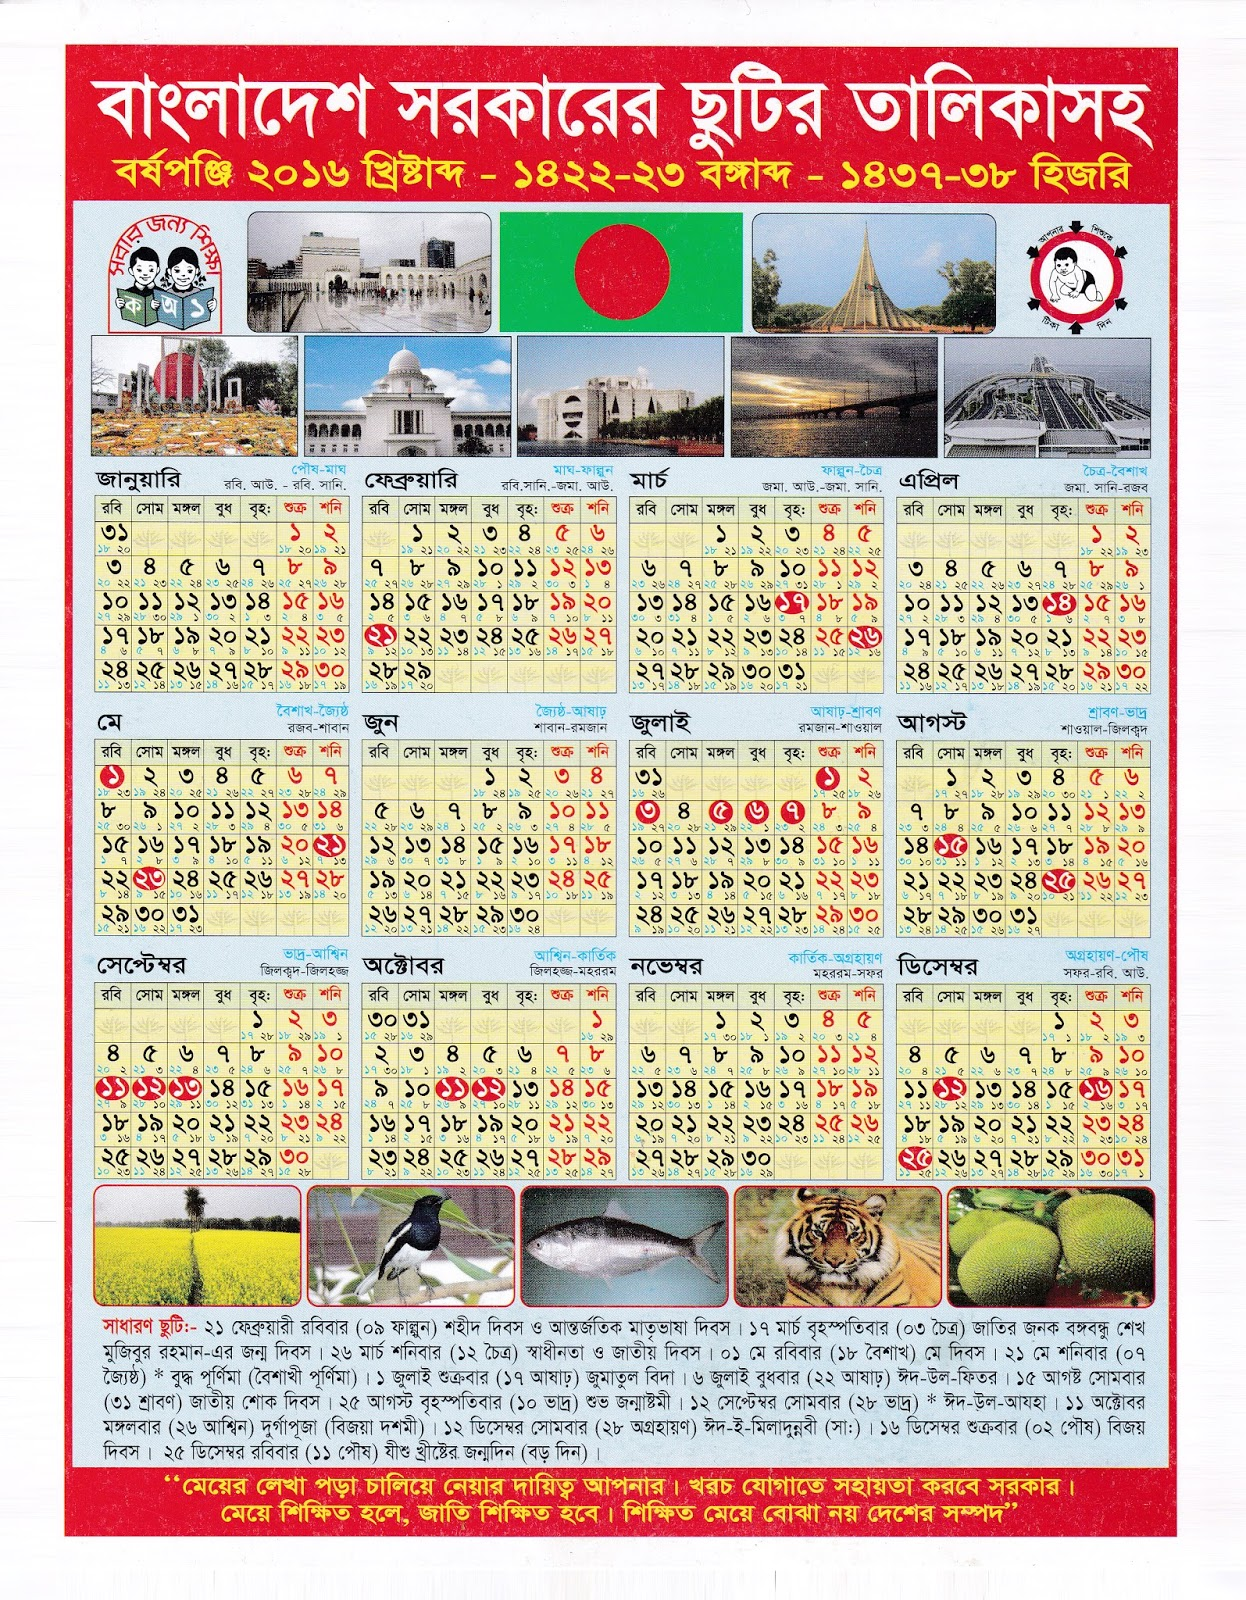 Bangladesh Government Holiday Calendar 2016 | Life in Bangladesh